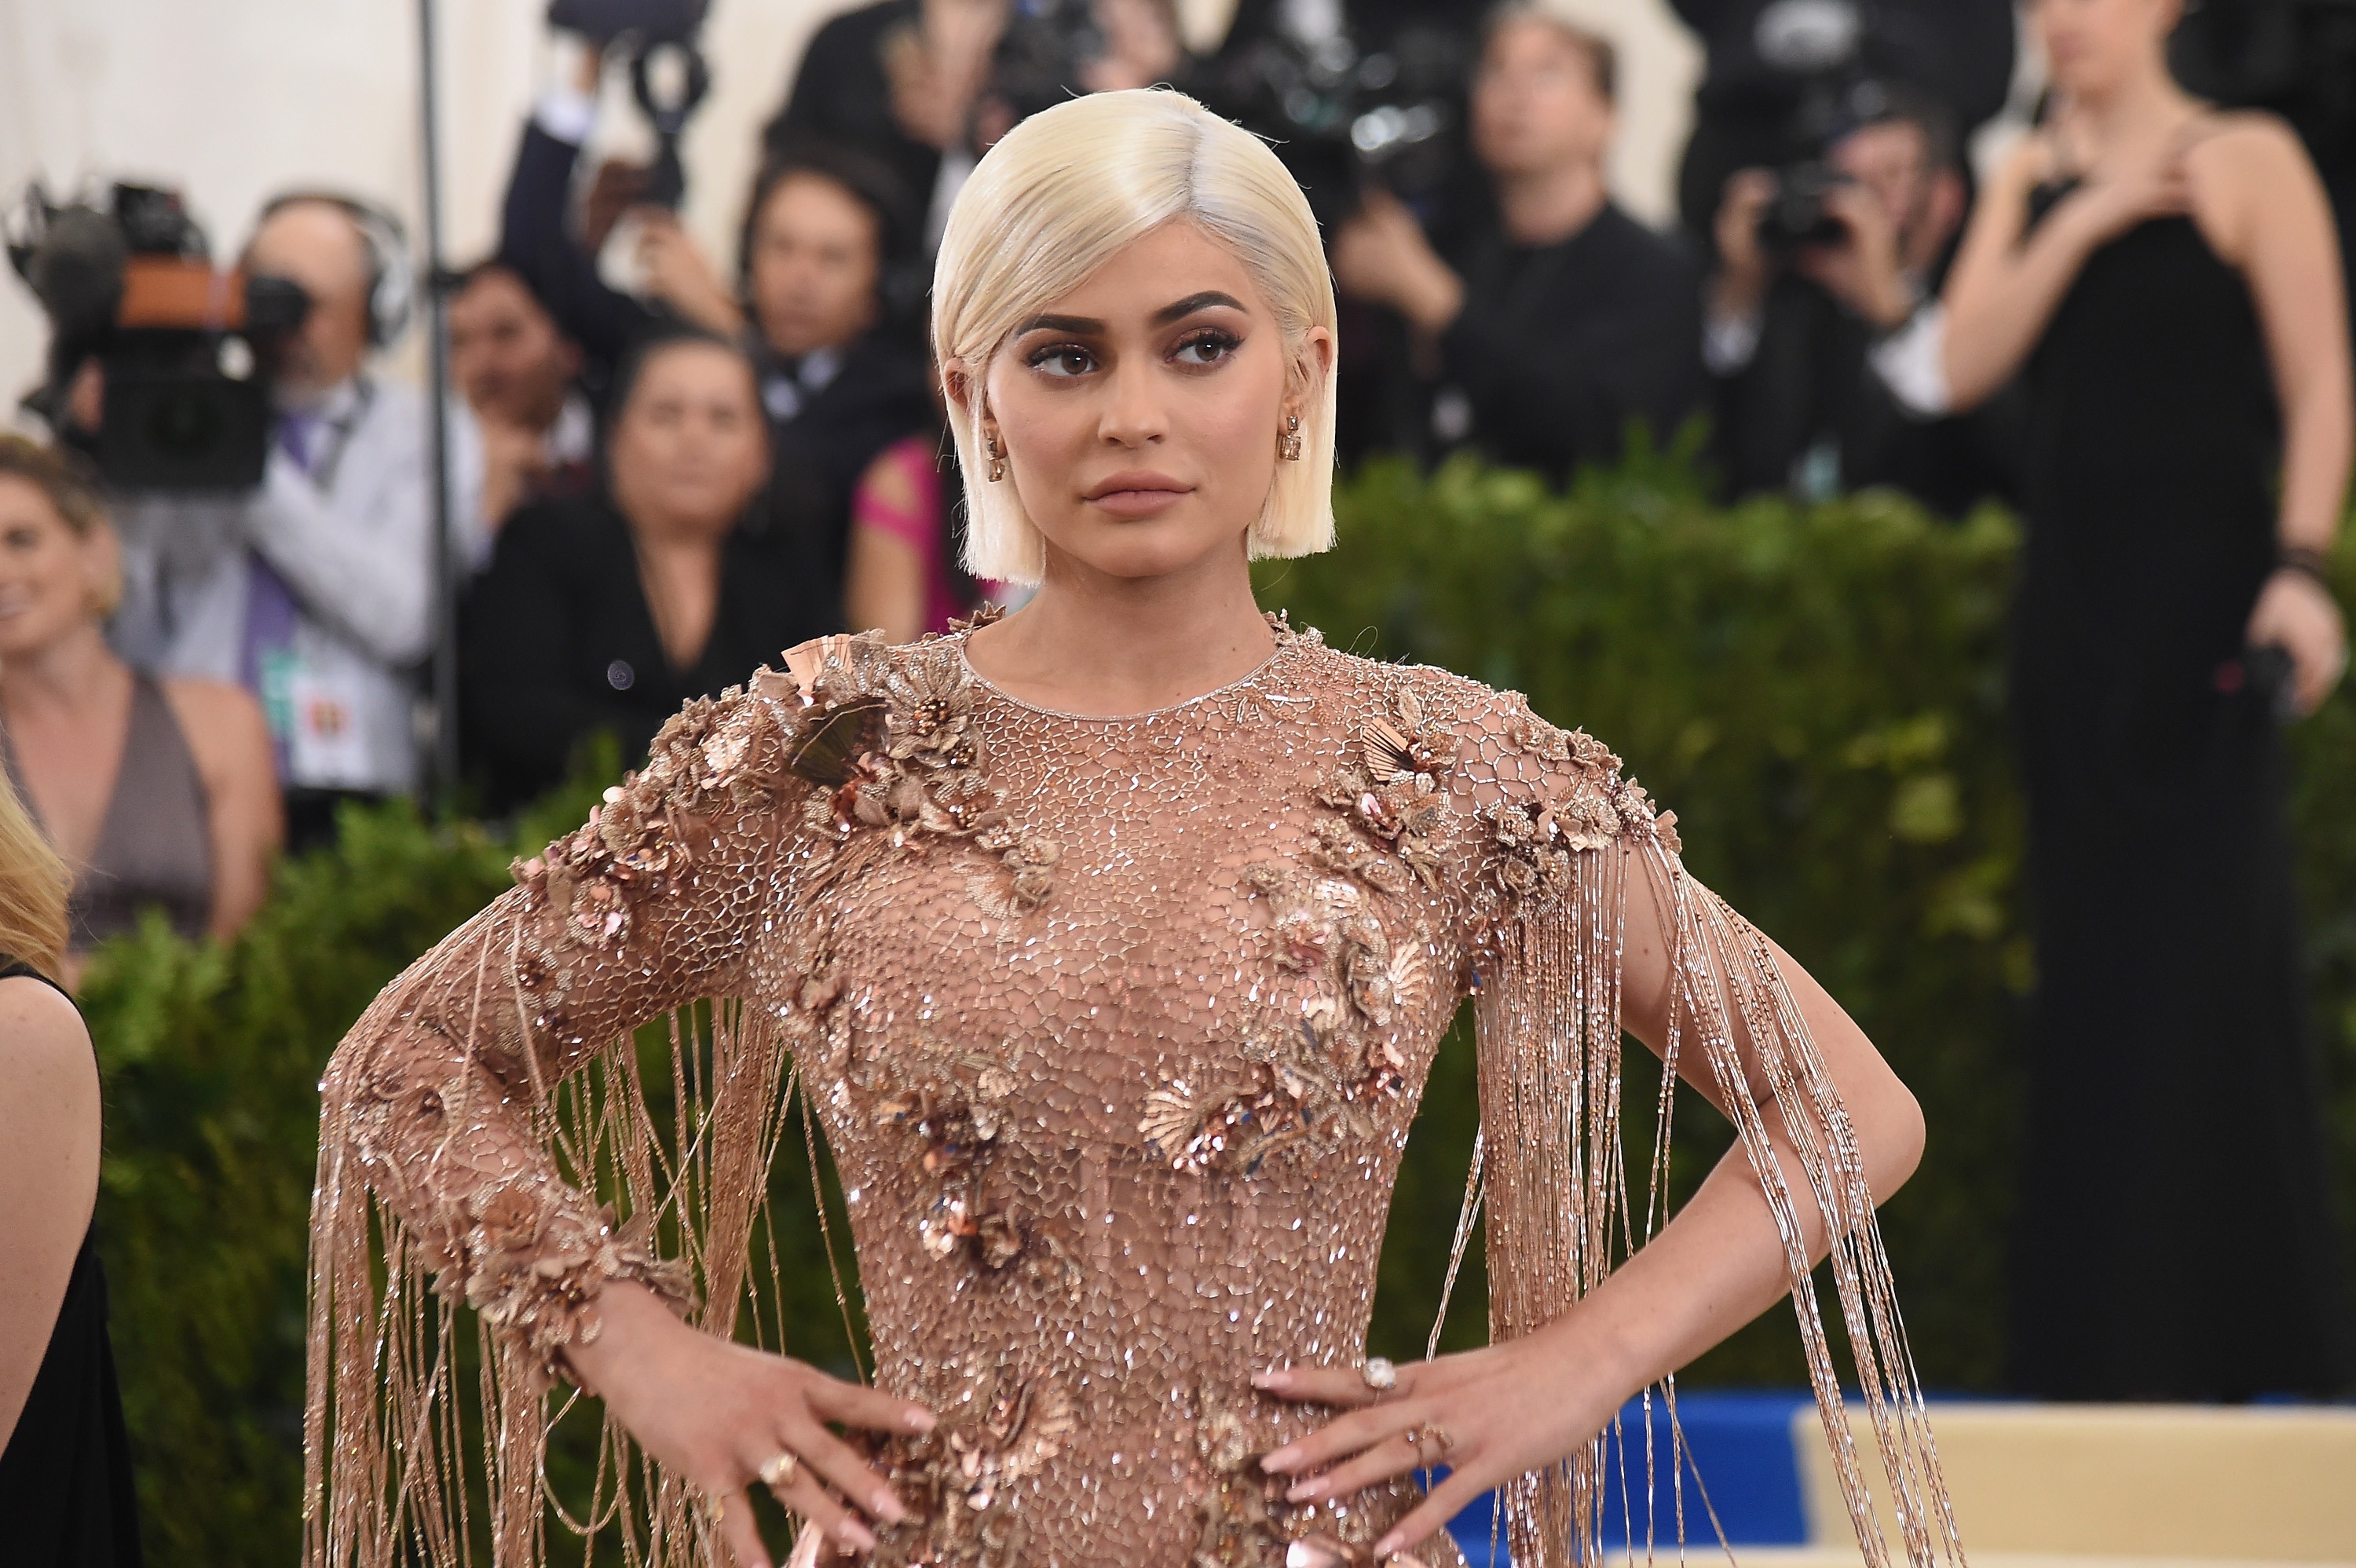 Kylie Jenner attends the 'Rei Kawakubo/Comme des Garcons: Art Of The In-Between' Costume Institute Gala at Metropolitan Museum of Art on May 1, 2017 in New York City.